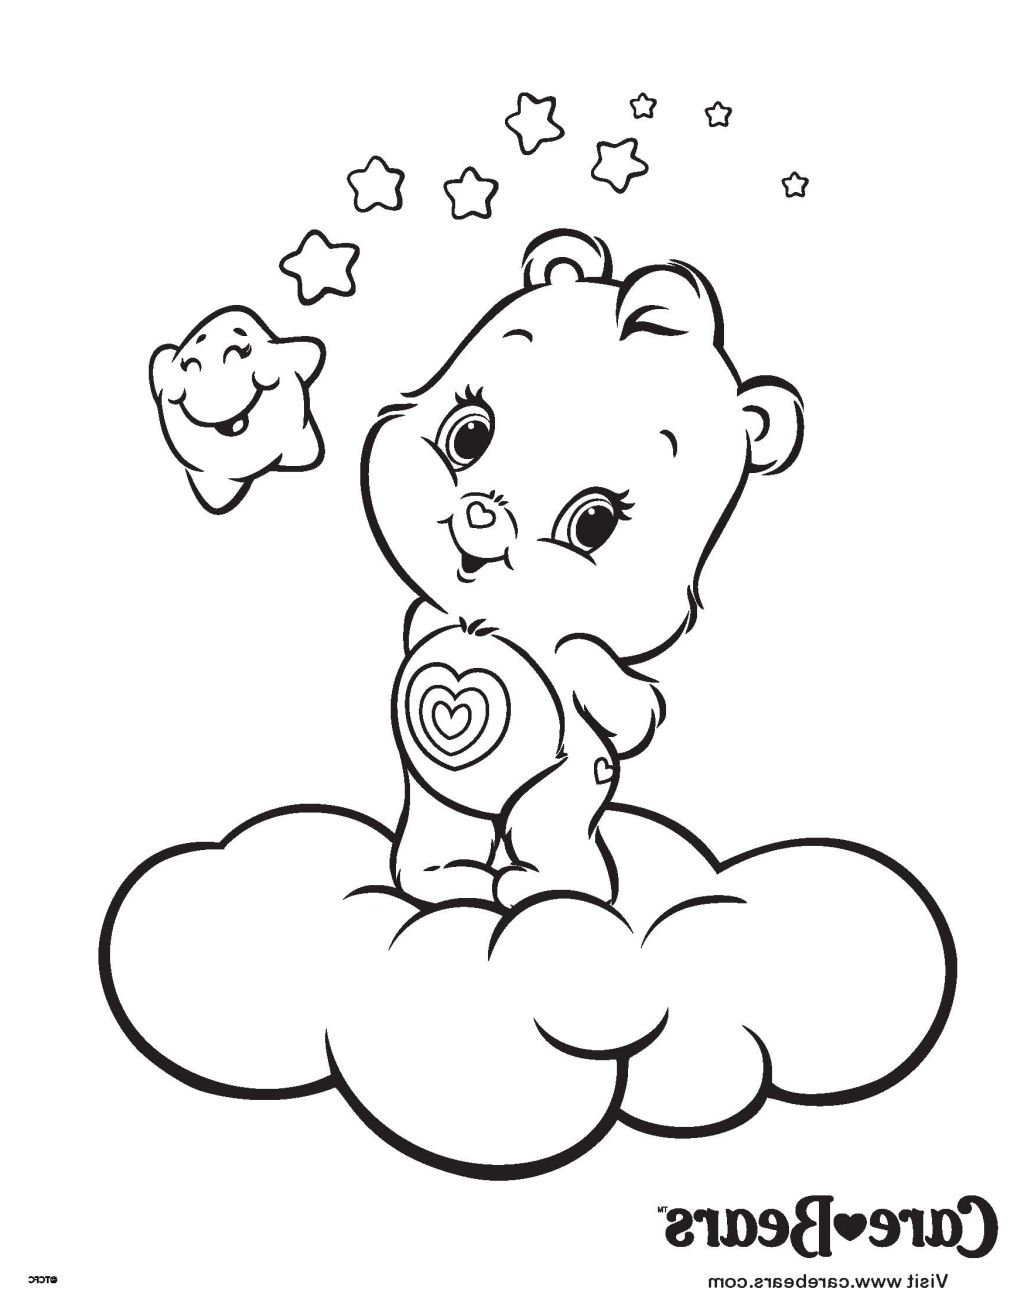 Care Bears Coloring Pages » Coloring Pages Kids